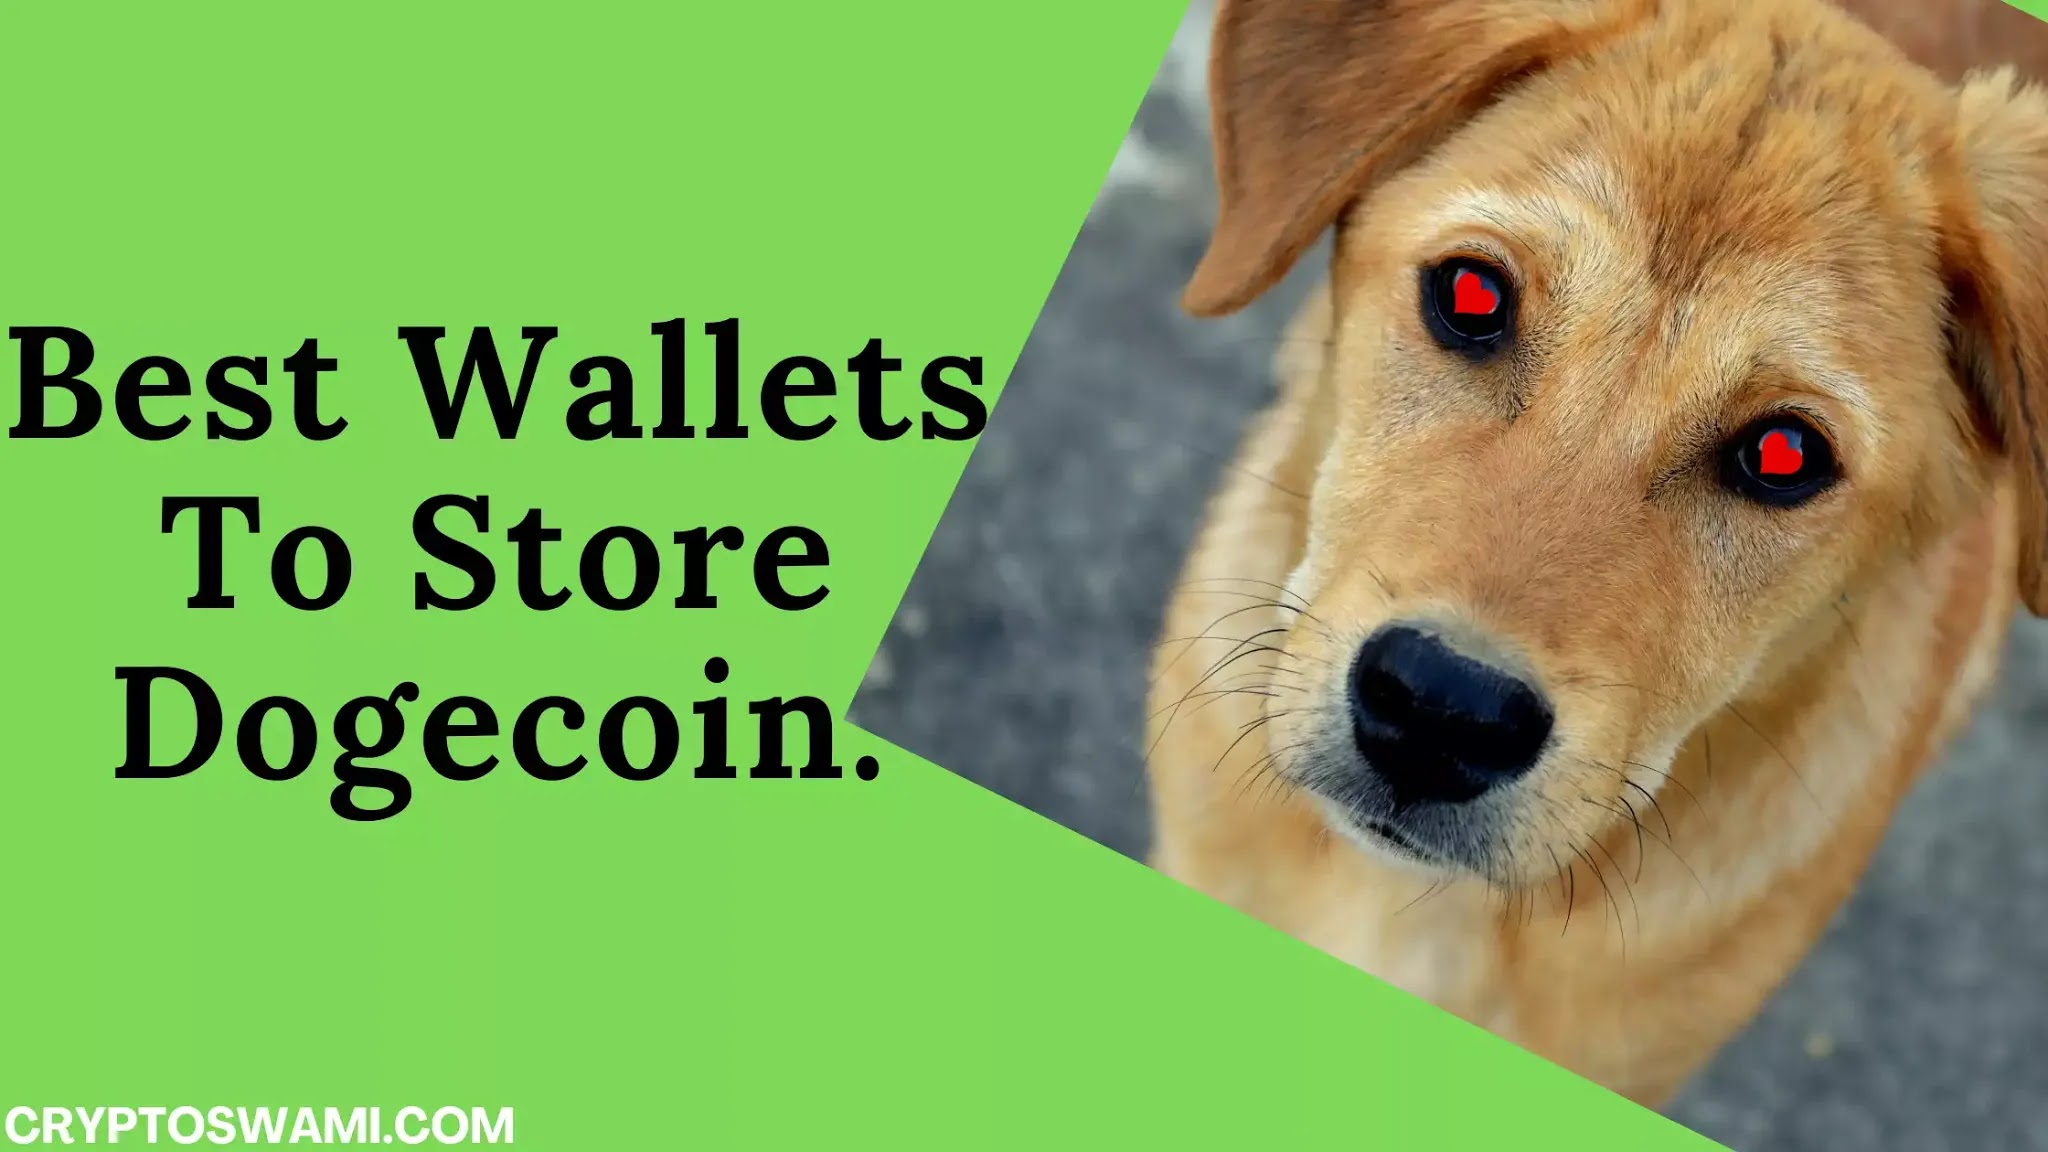 DOGE Wallets - 10 Best Wallet To Store Dogecoin